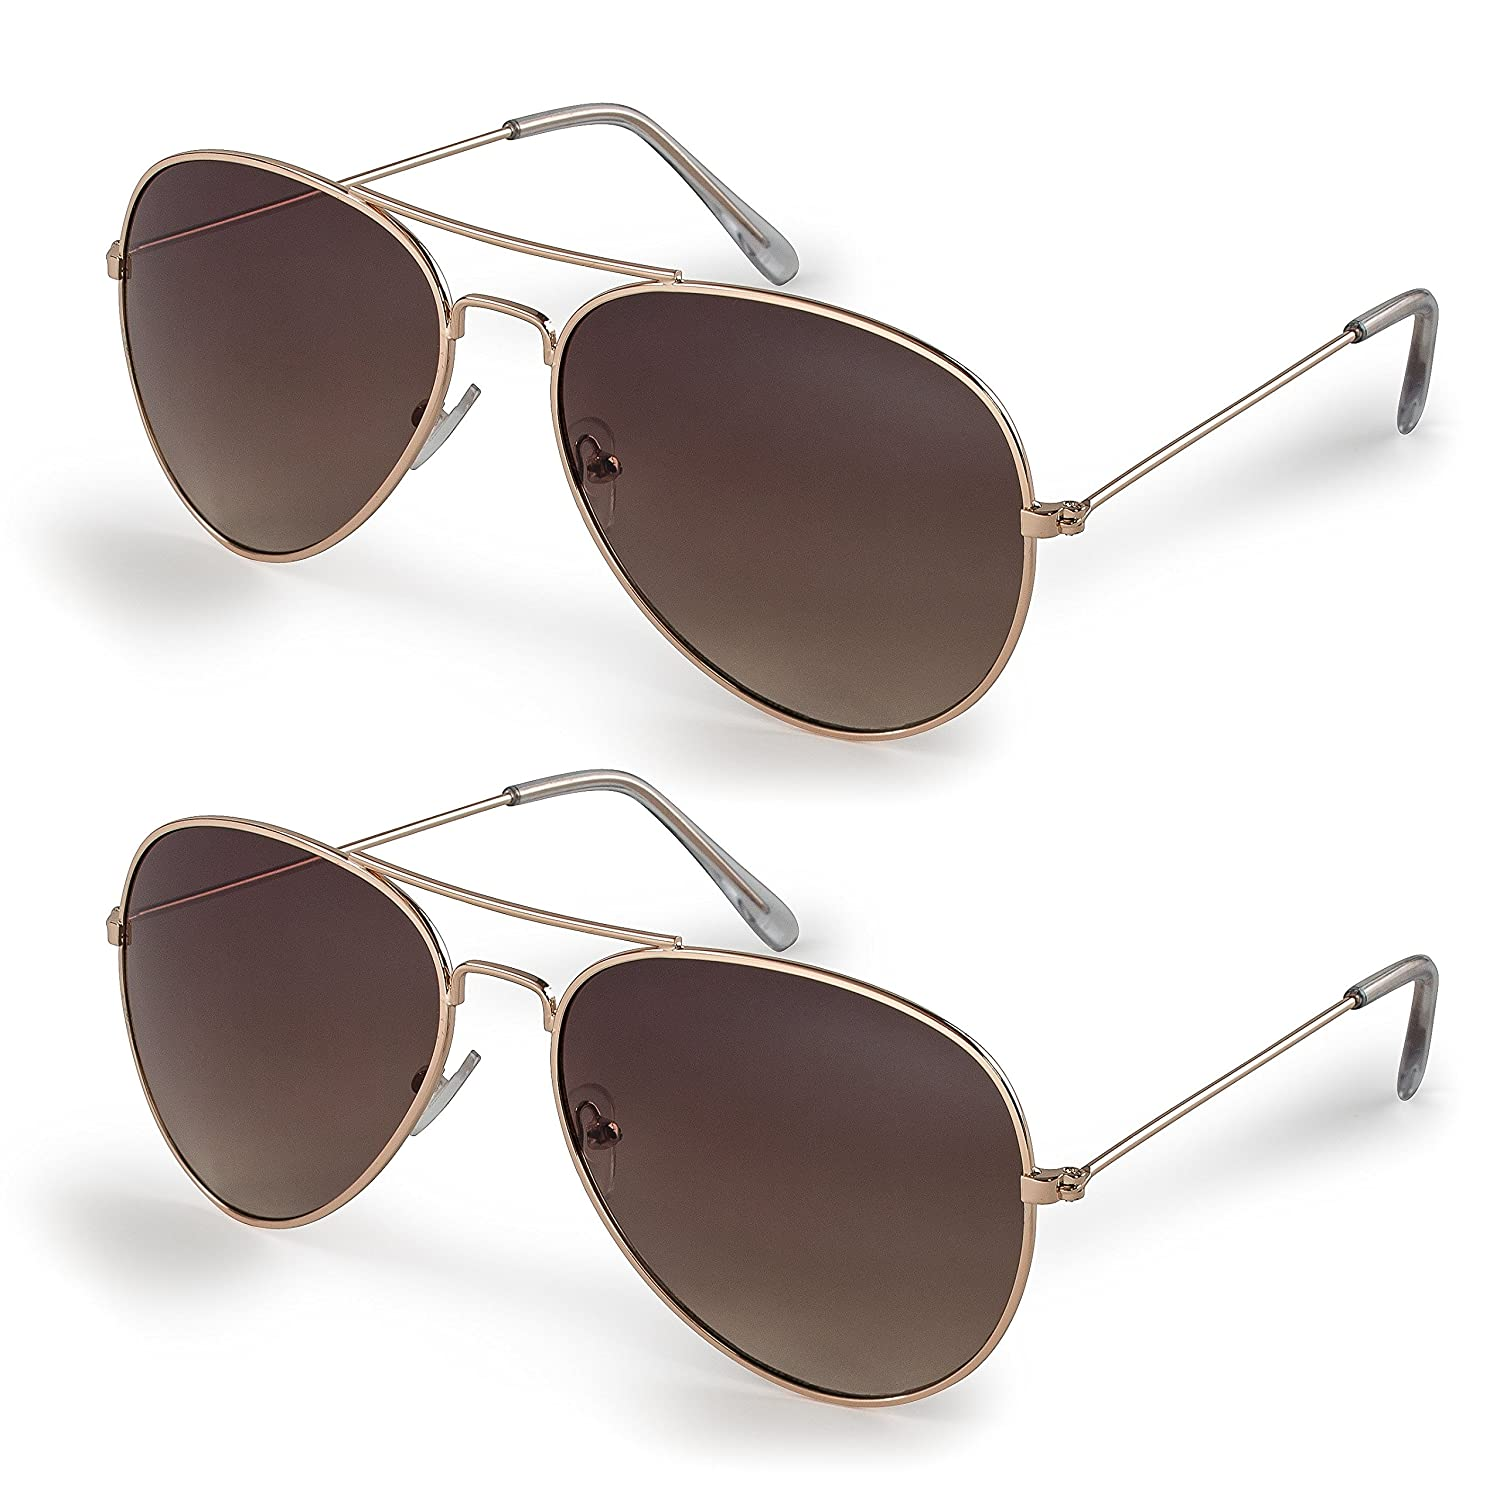 Stylle Classic Aviator Sunglasses with Protective Bag, 100% UV Protection ST6002_Gold_C4_C2